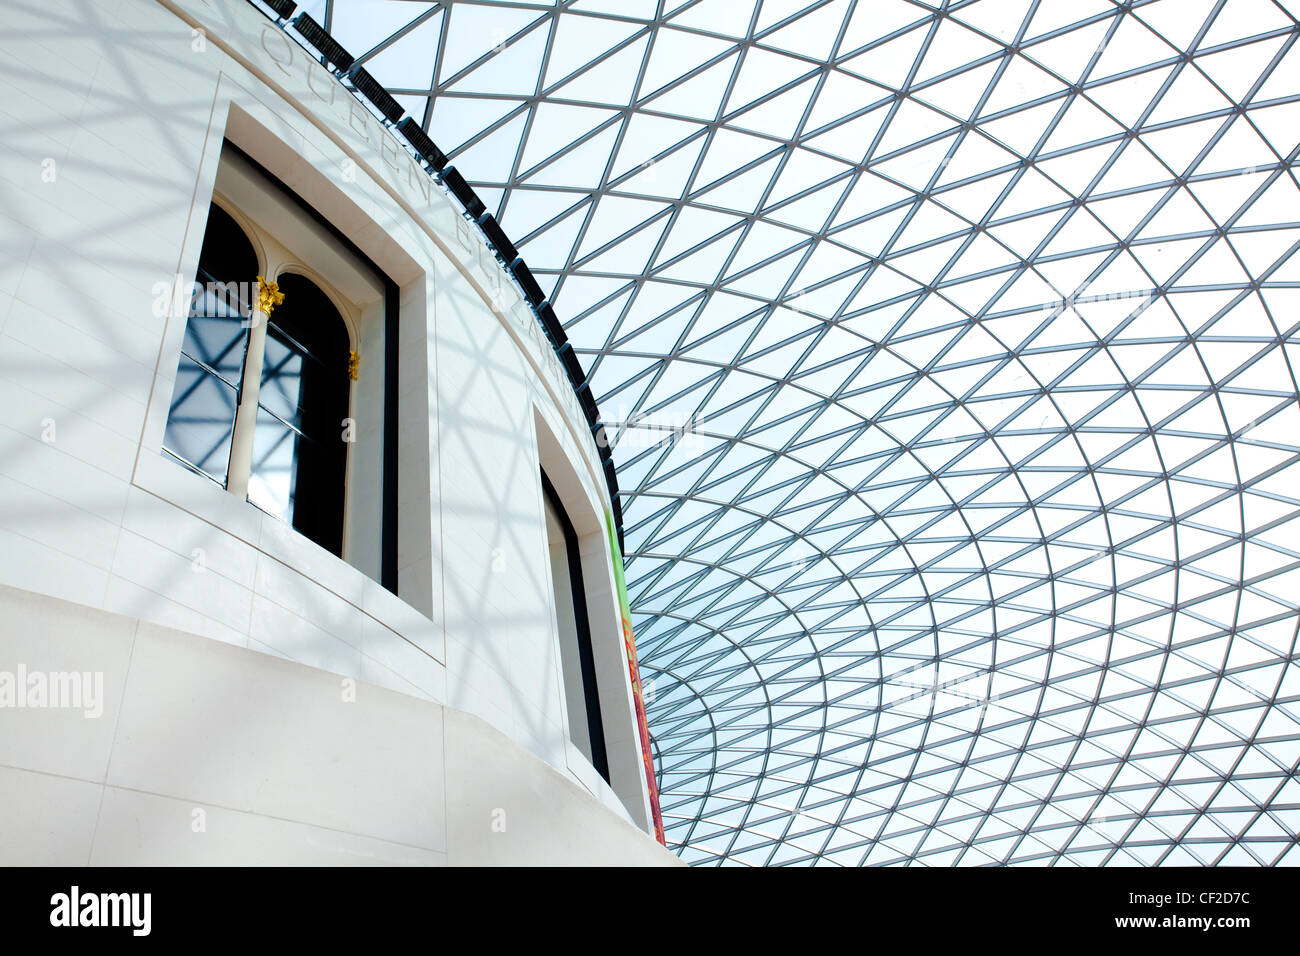 The glass roof covering the Queen Elizabeth II Great Court at the British Museum. - Stock Image